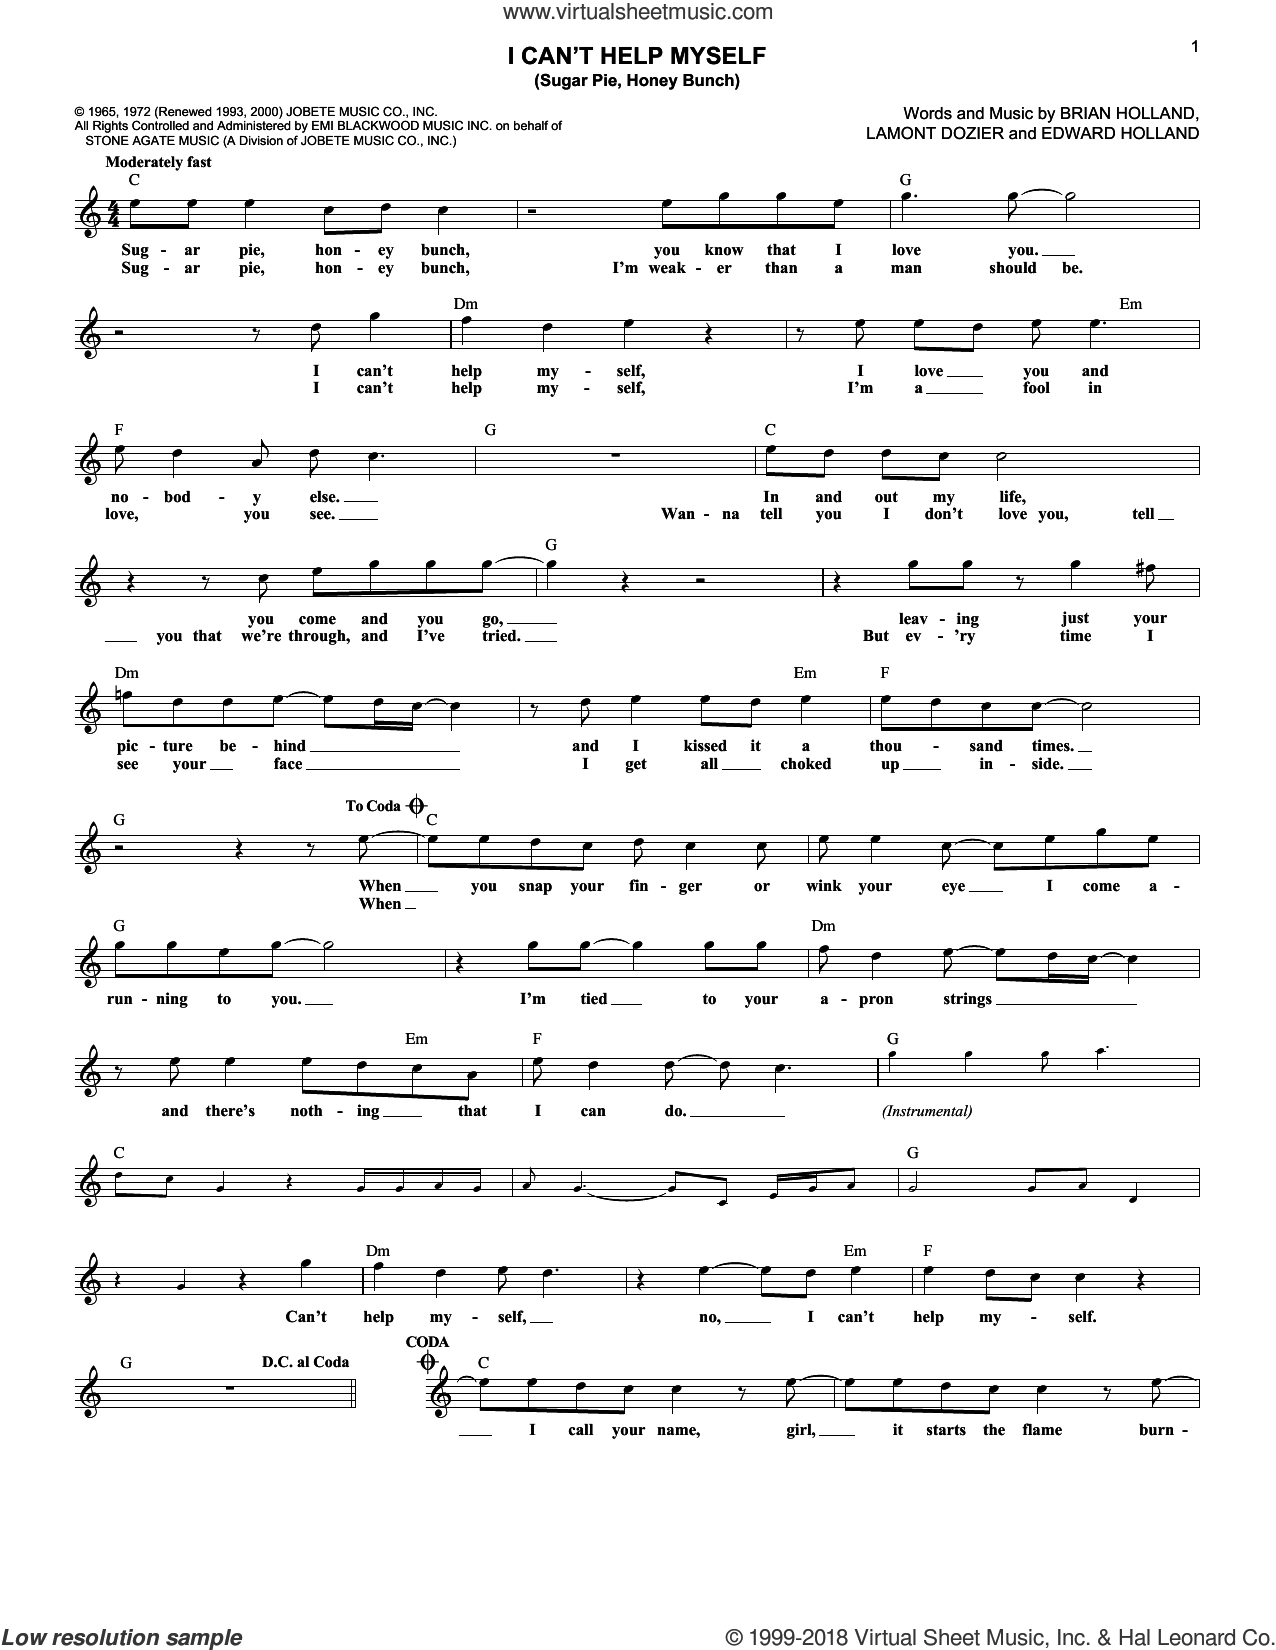 I Can't Help Myself (Sugar Pie, Honey Bunch) sheet music for voice and other instruments (fake book) by The Four Tops, Brian Holland, Eddie Holland and Lamont Dozier, intermediate. Score Image Preview.